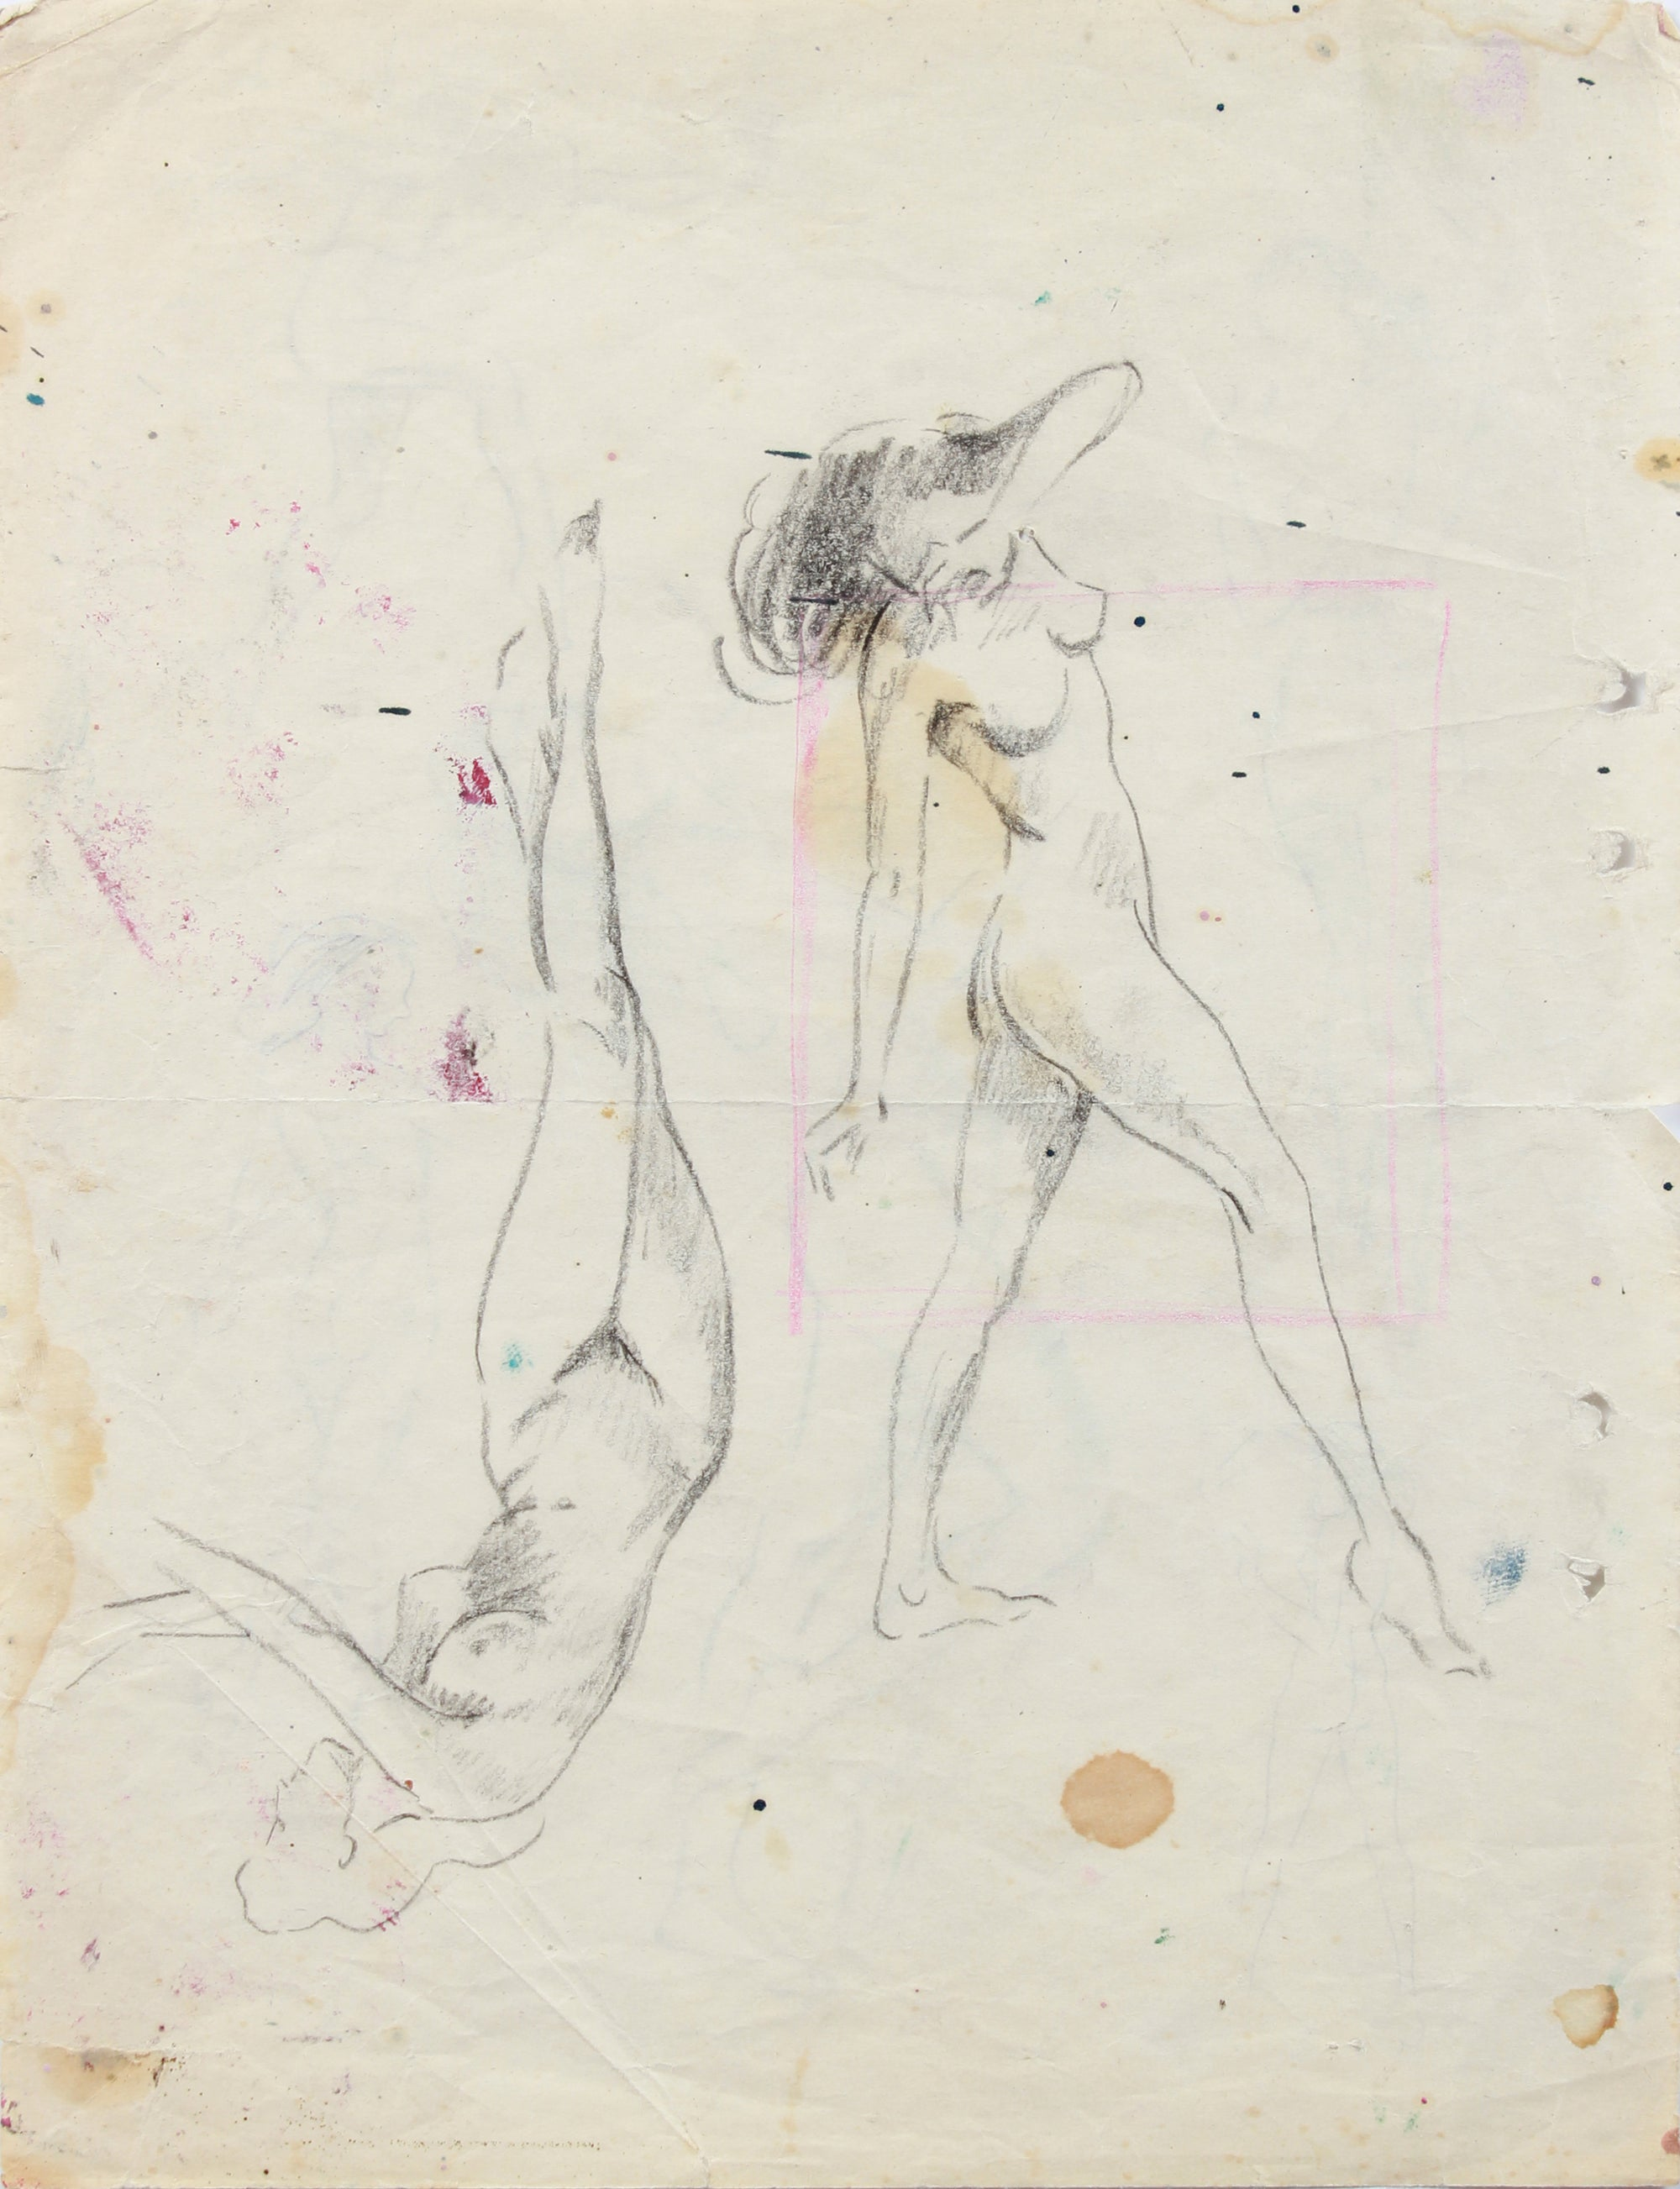 Nymph-like Figures - Study <br>20th Century Mixed Media Drawing <br><br>#A7974